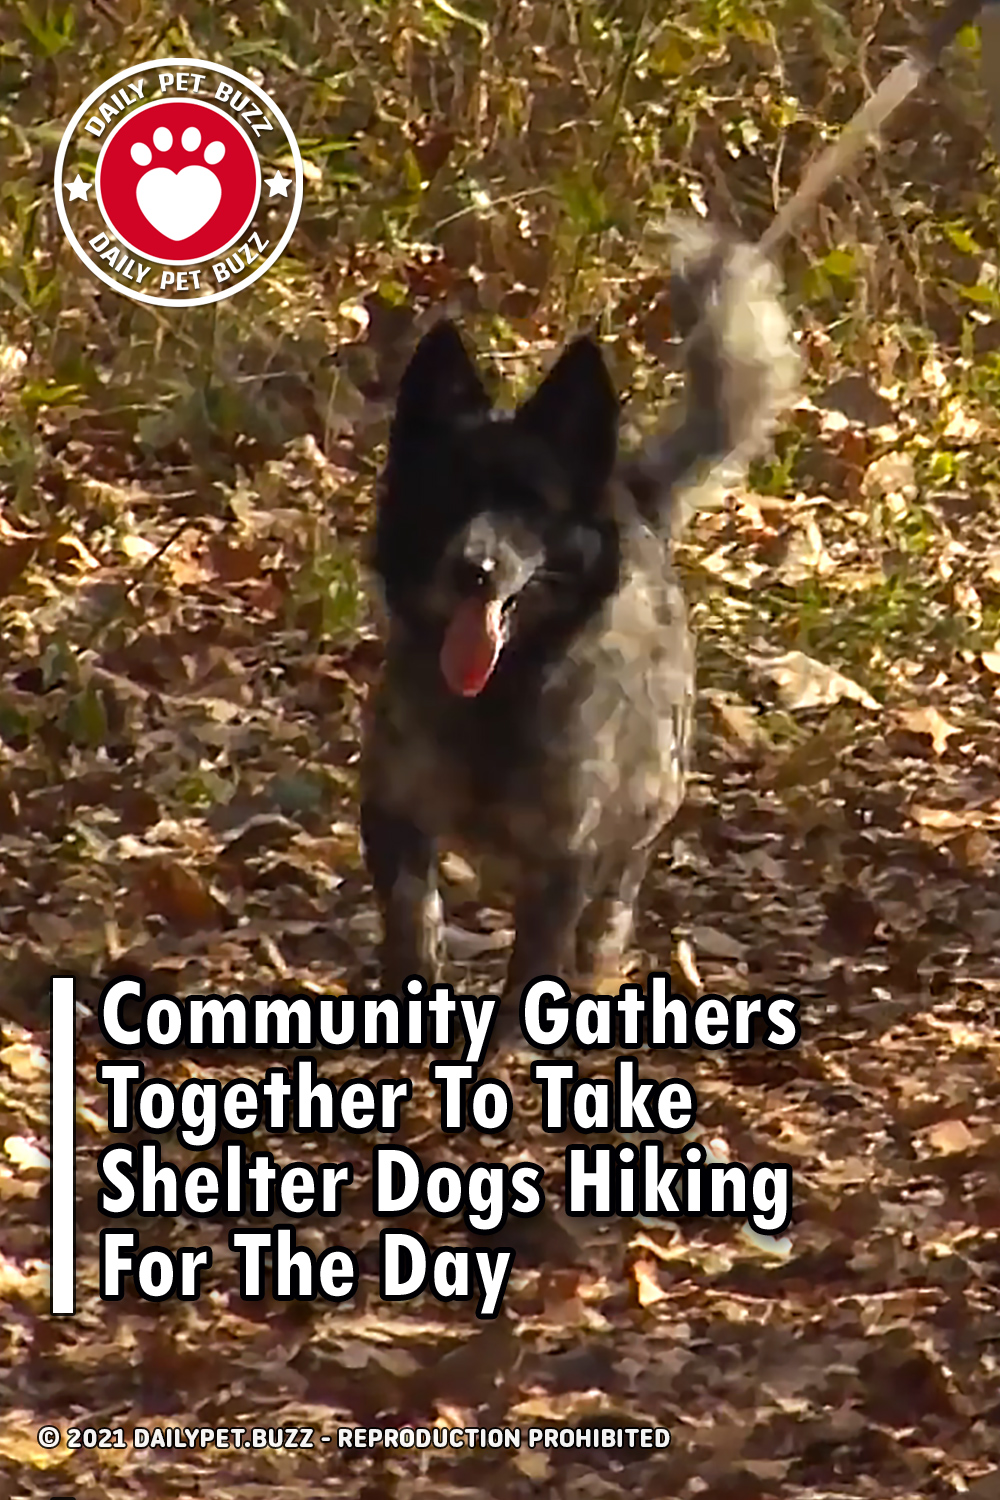 Community Gathers Together To Take Shelter Dogs Hiking For The Day